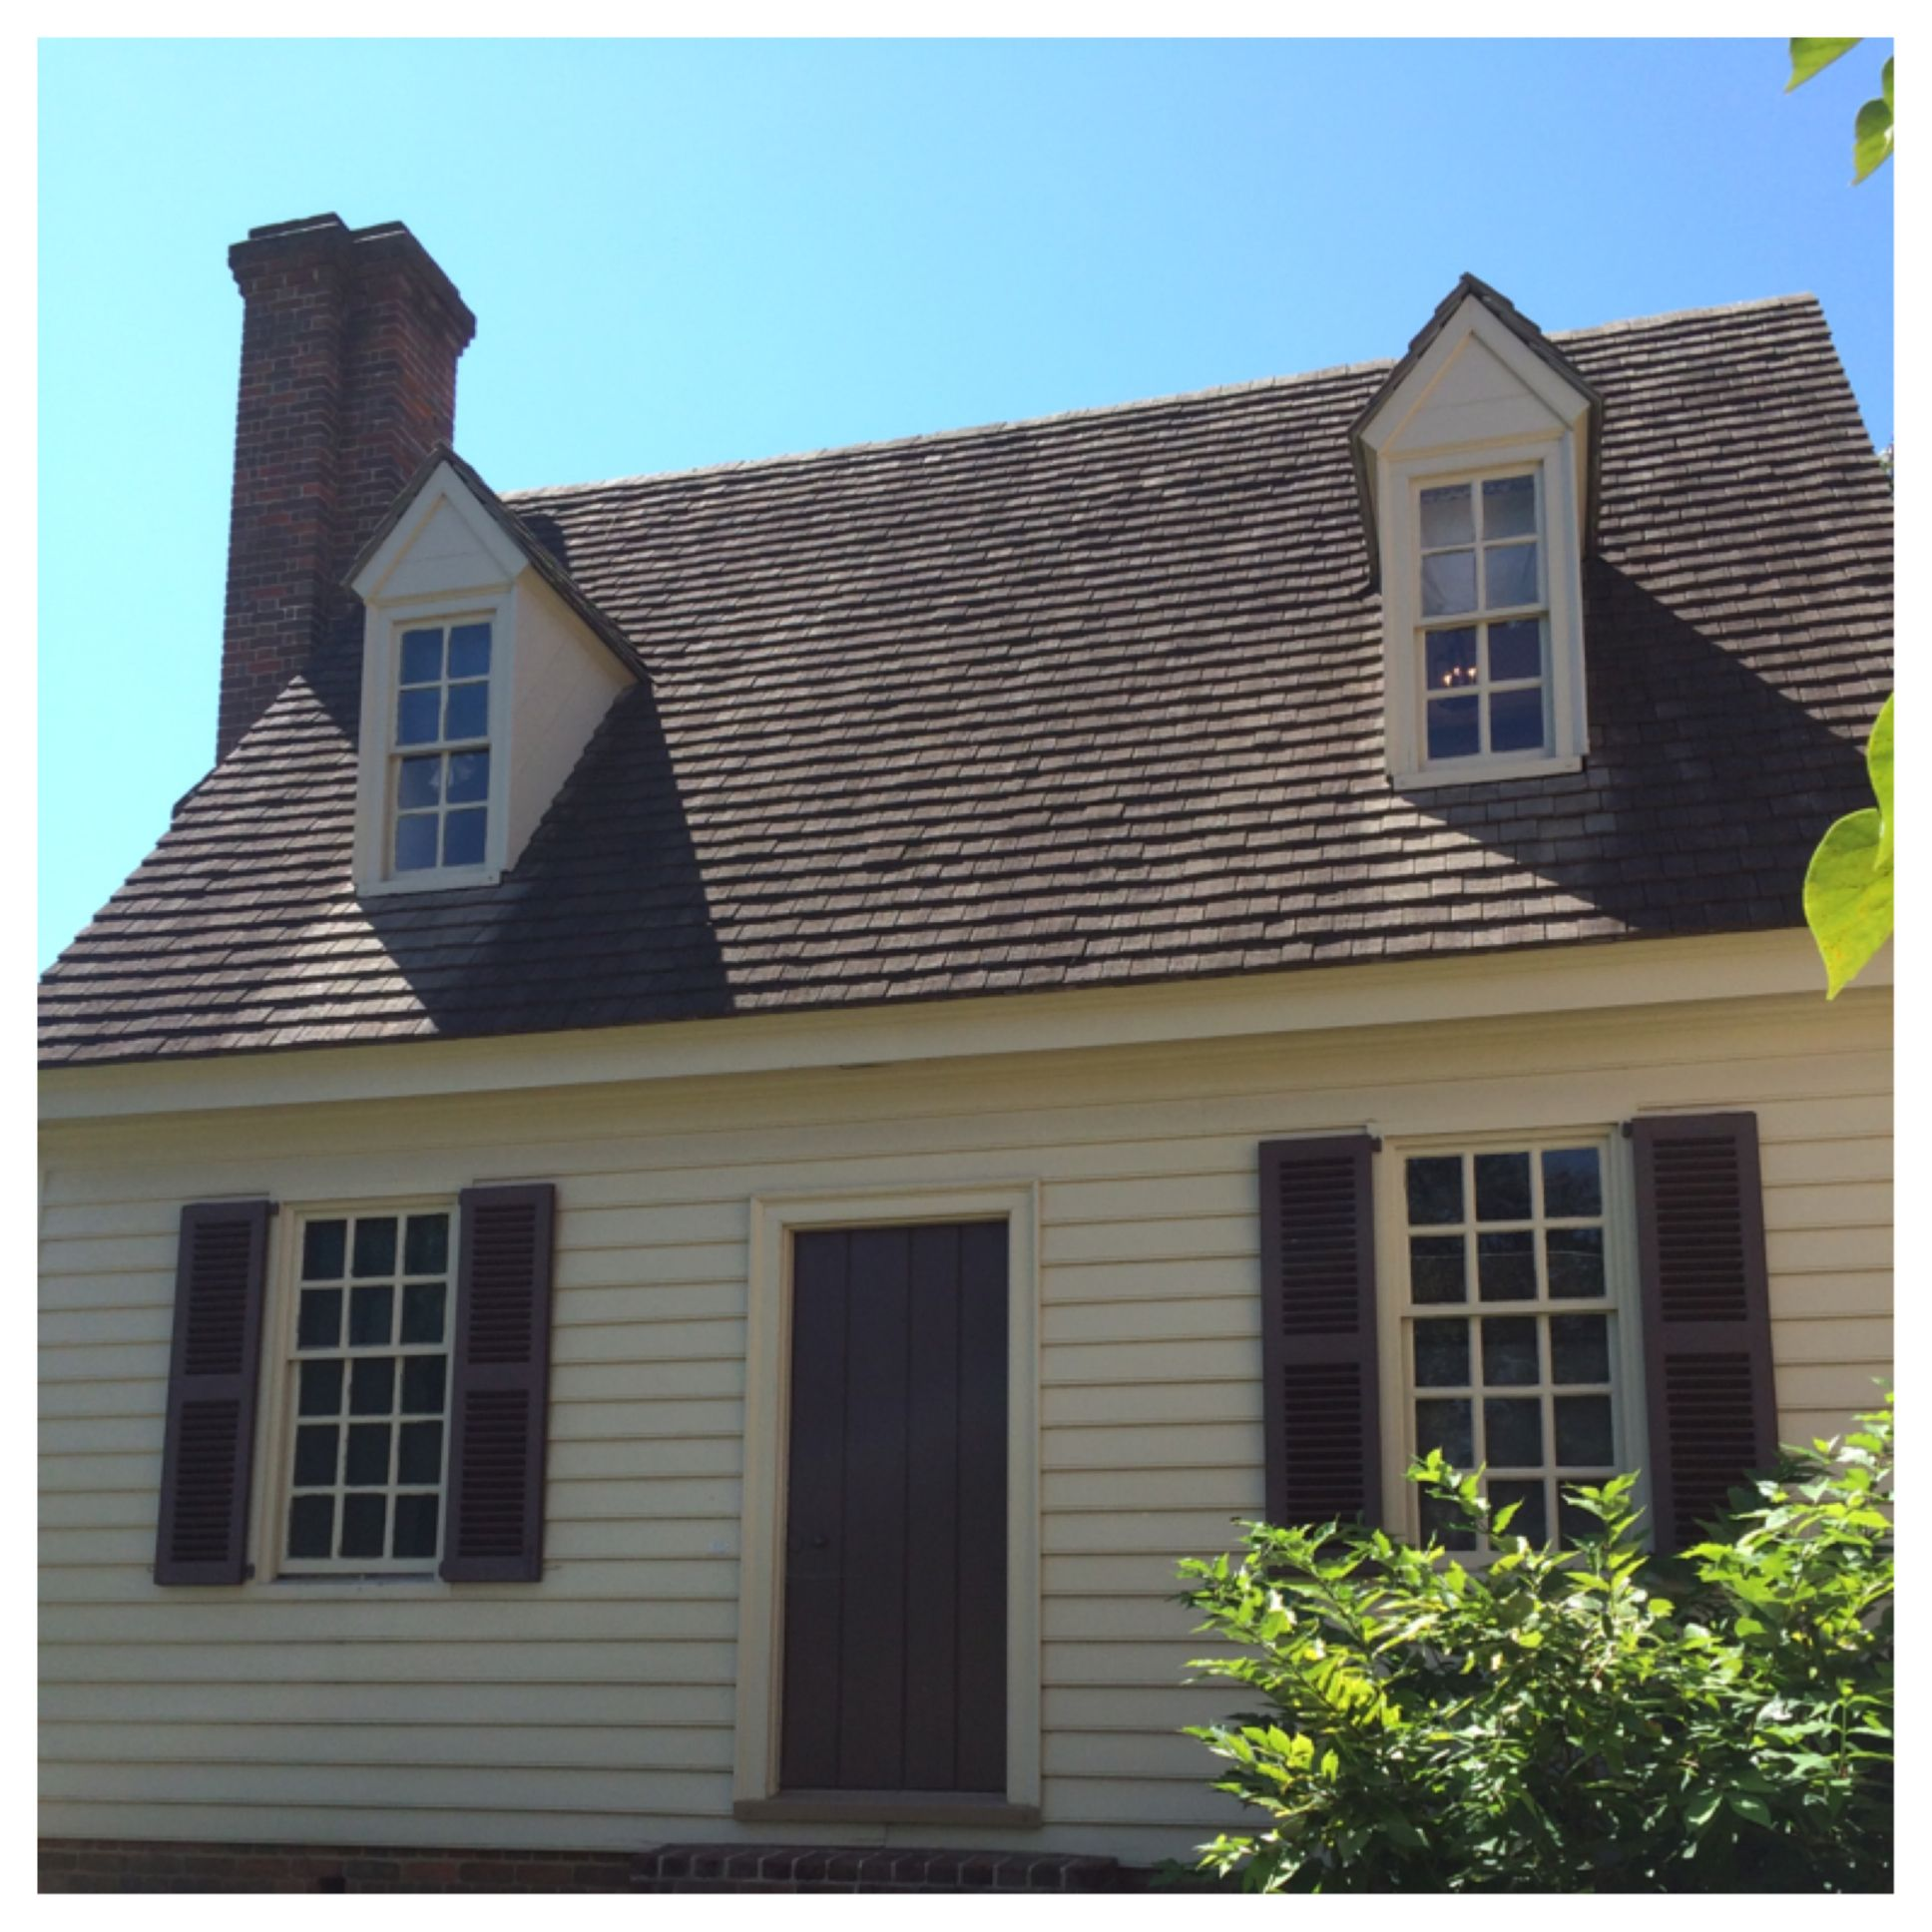 Authentic Colonial Houses In Colonial Williamsburg Va Colonial House Colonial Williamsburg Colonial Williamsburg Va